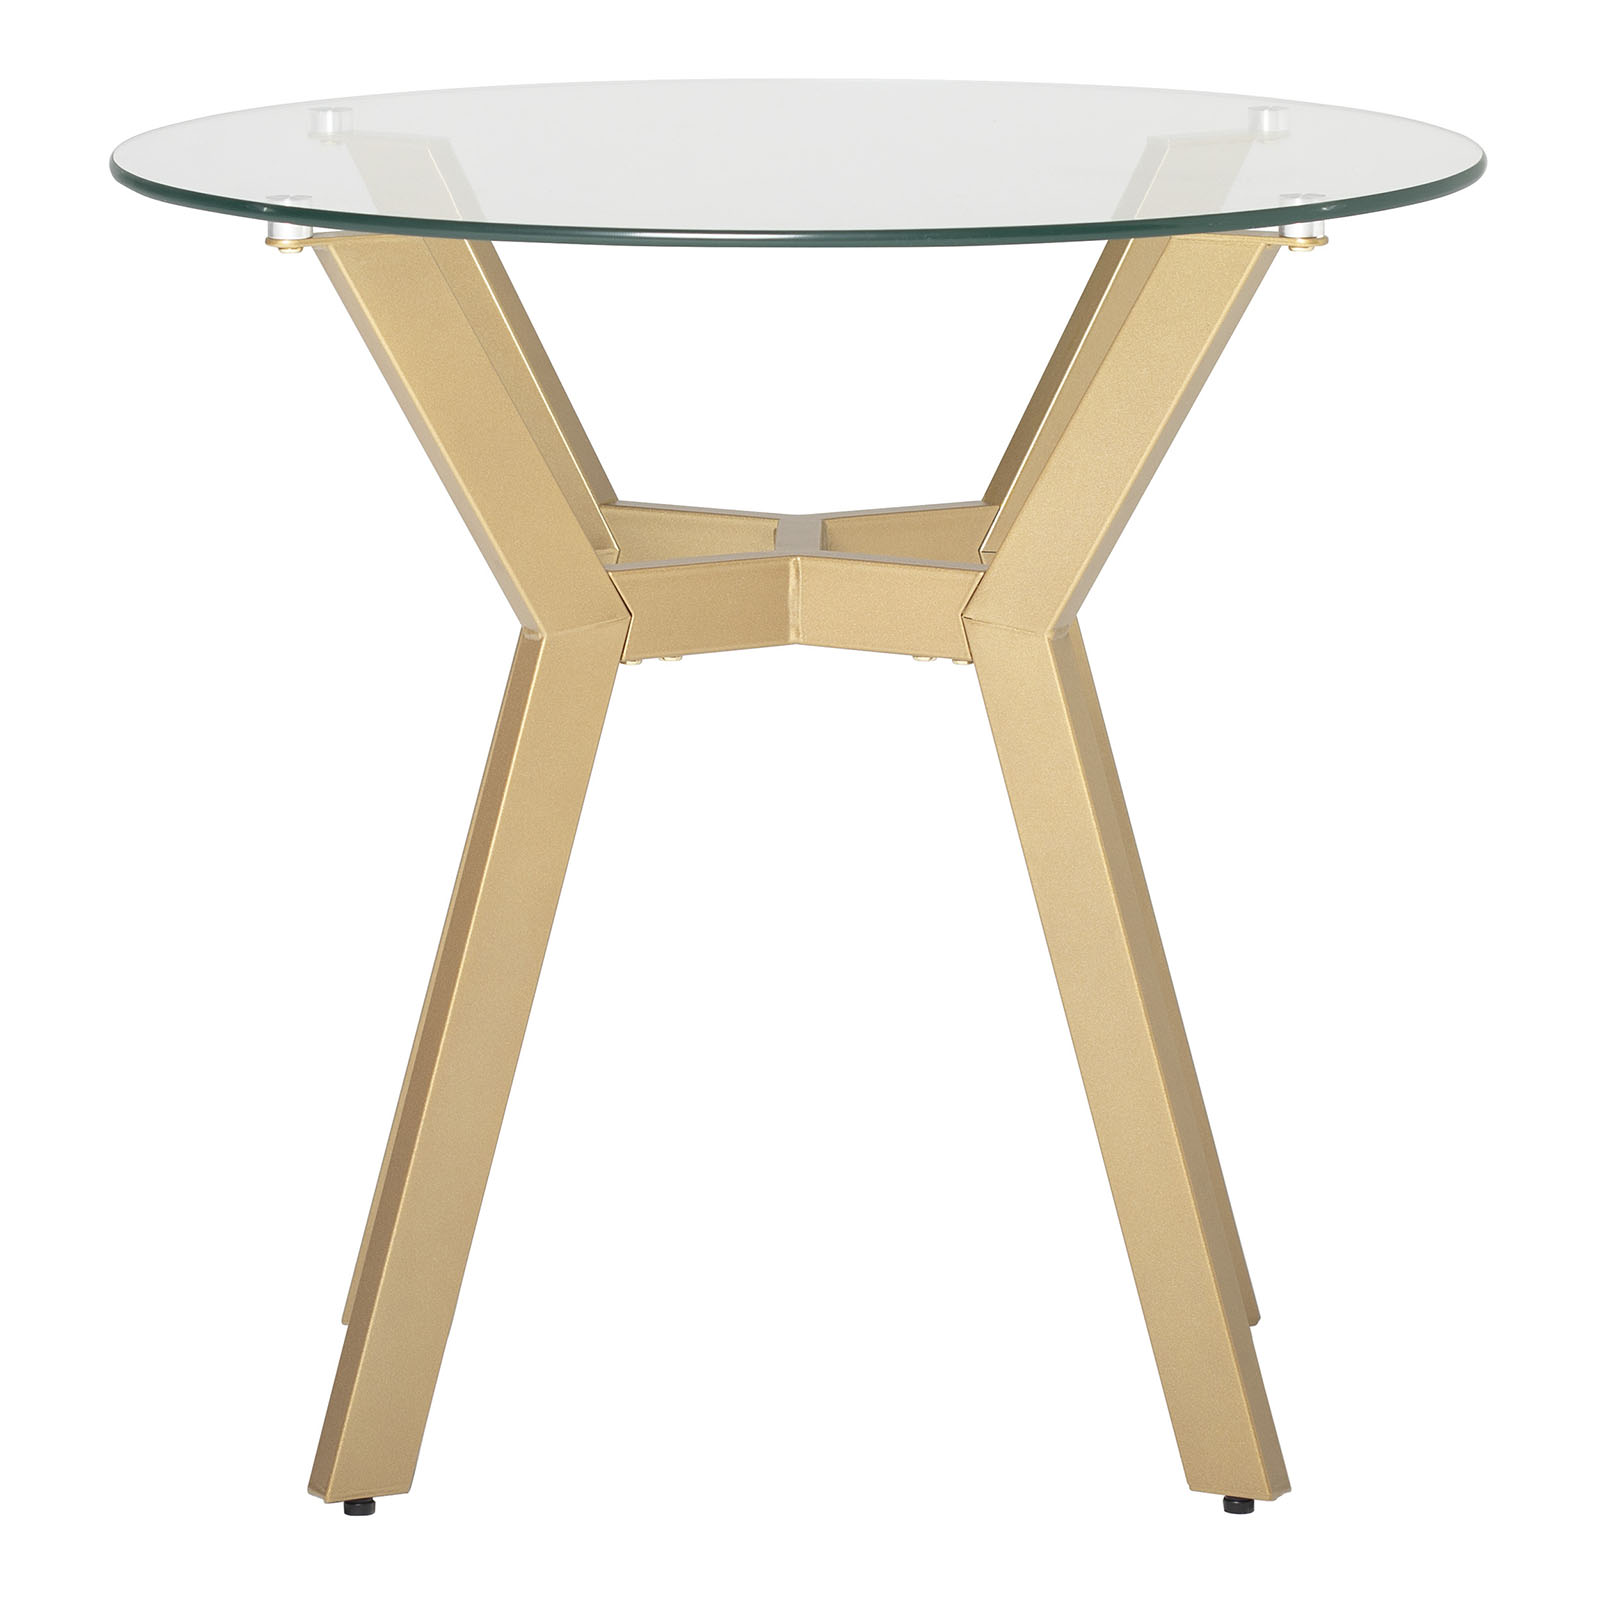 71040 ArchTech Round End Table side